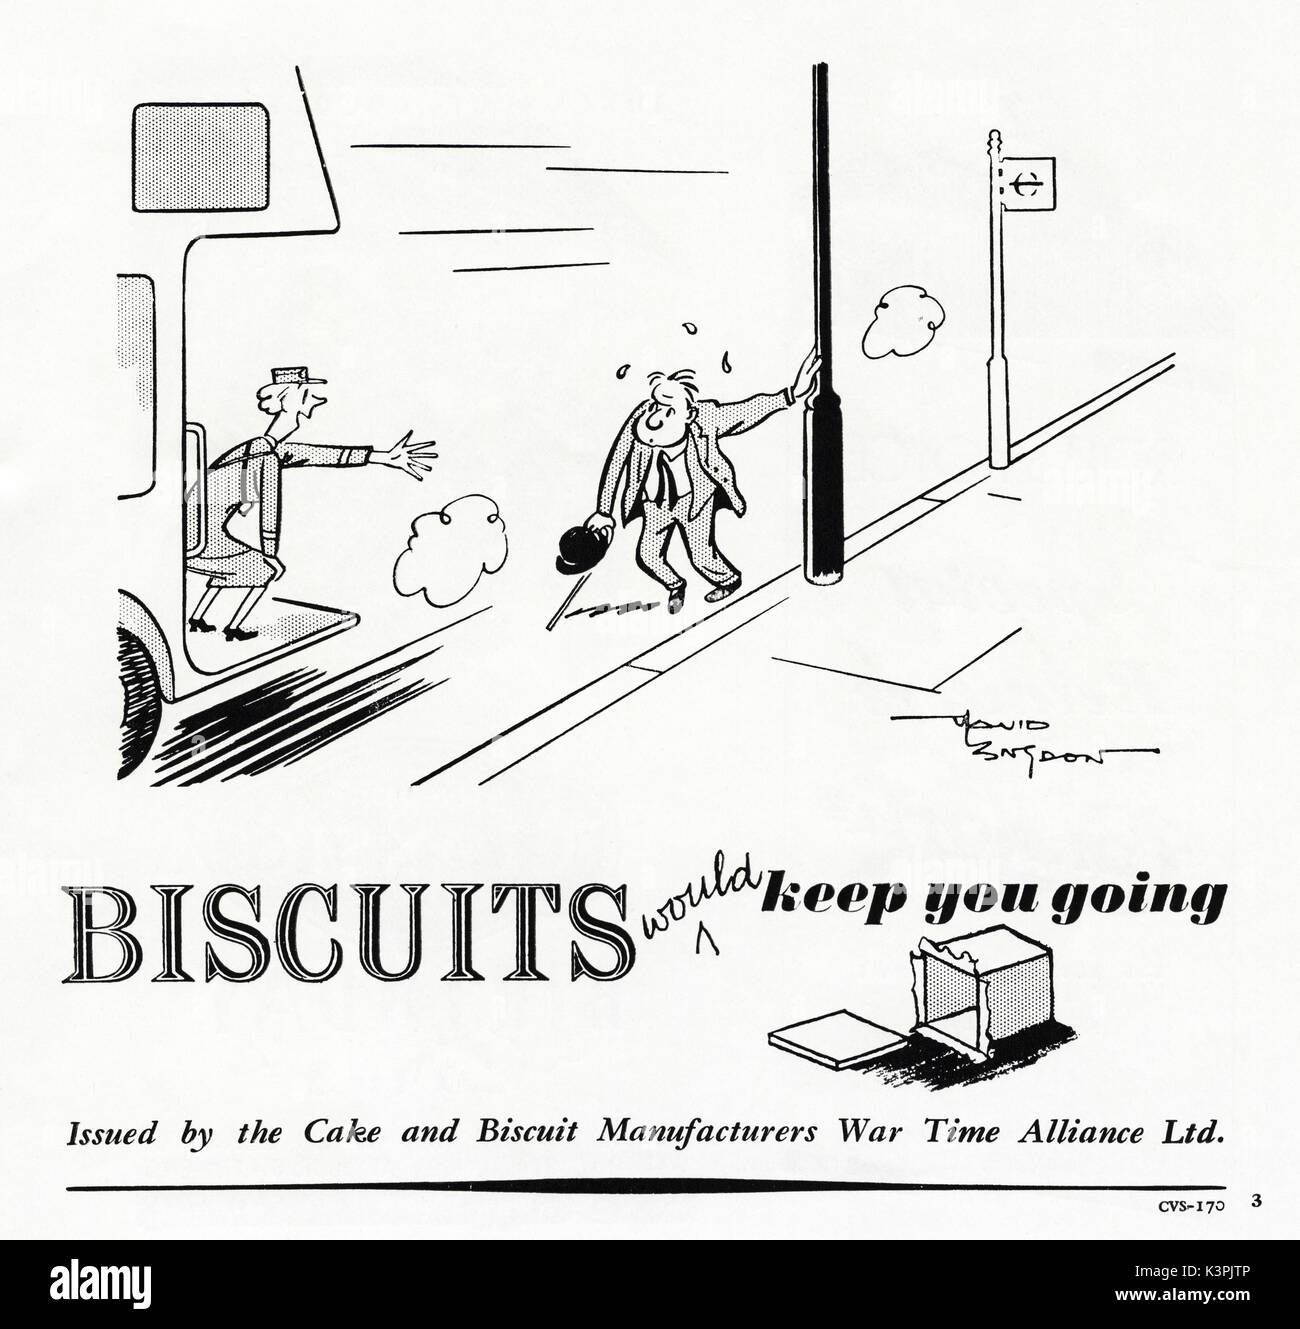 1940s old vintage original advert advertising biscuits Issued by the Cake and Biscuit Manufacturers War Time Alliance Ltd in magazine circa 1947 when supplies were still restricted under post-war rationing - Stock Image